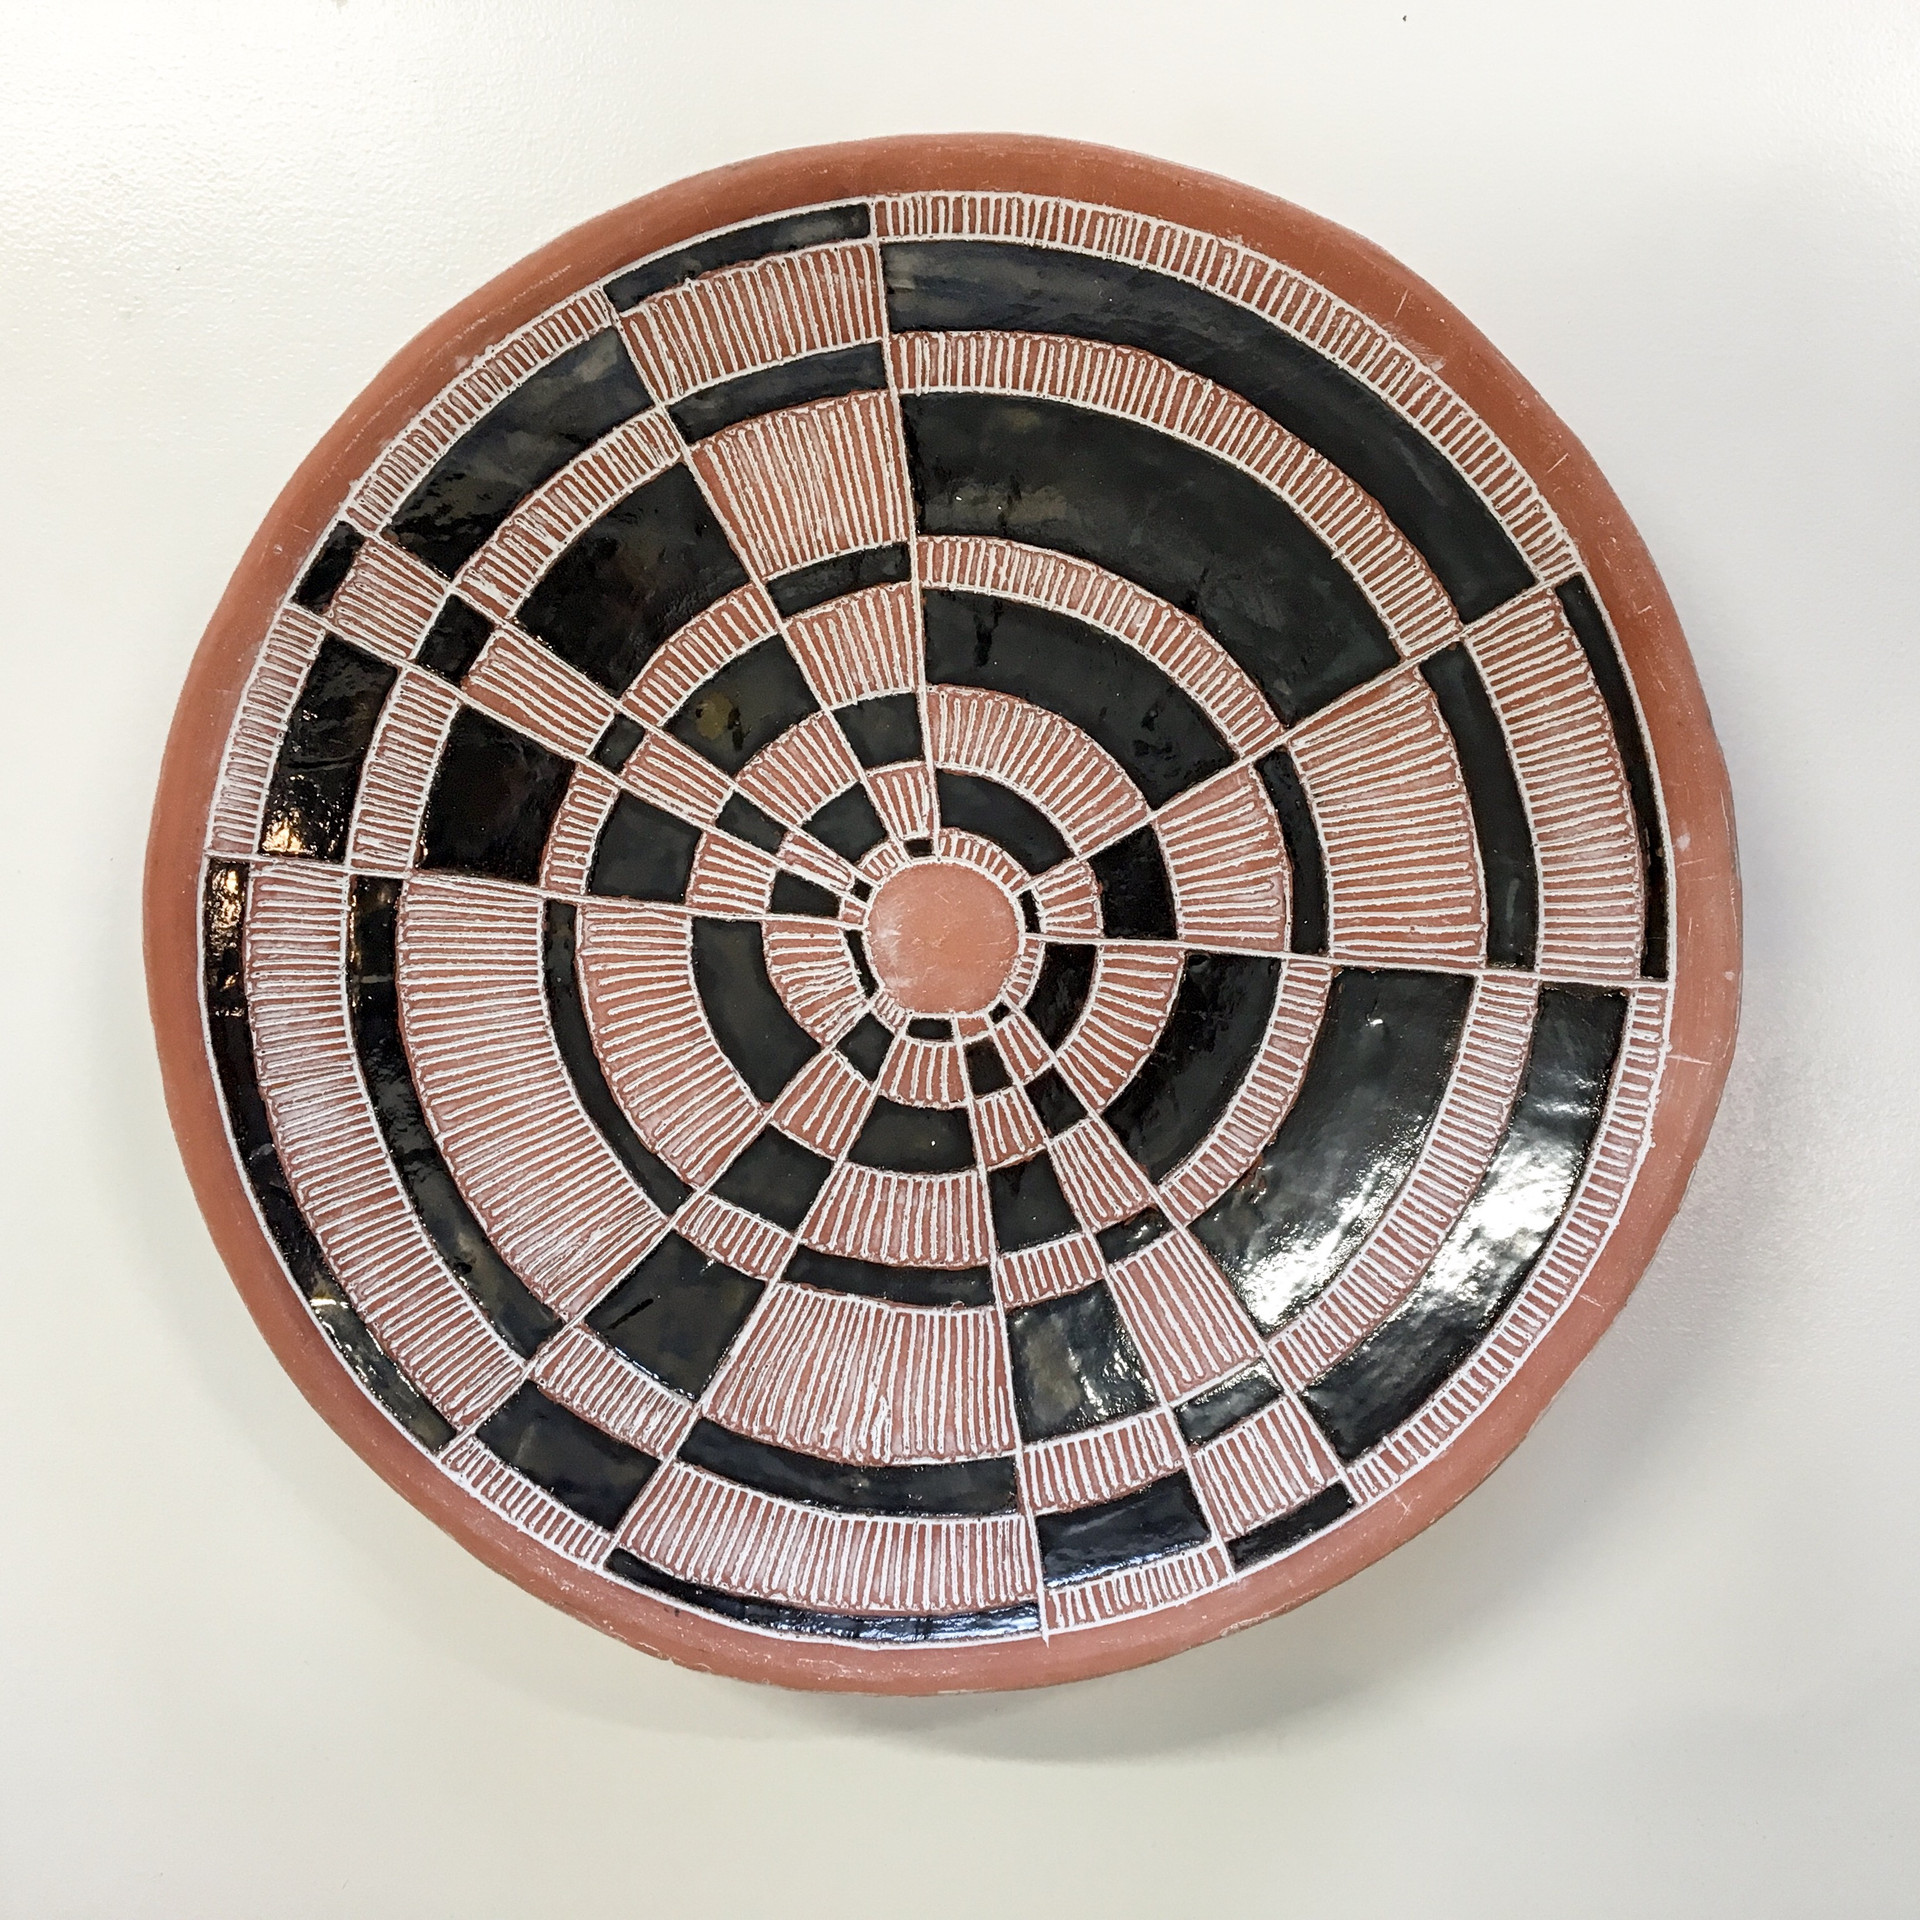 The Checkered Plate